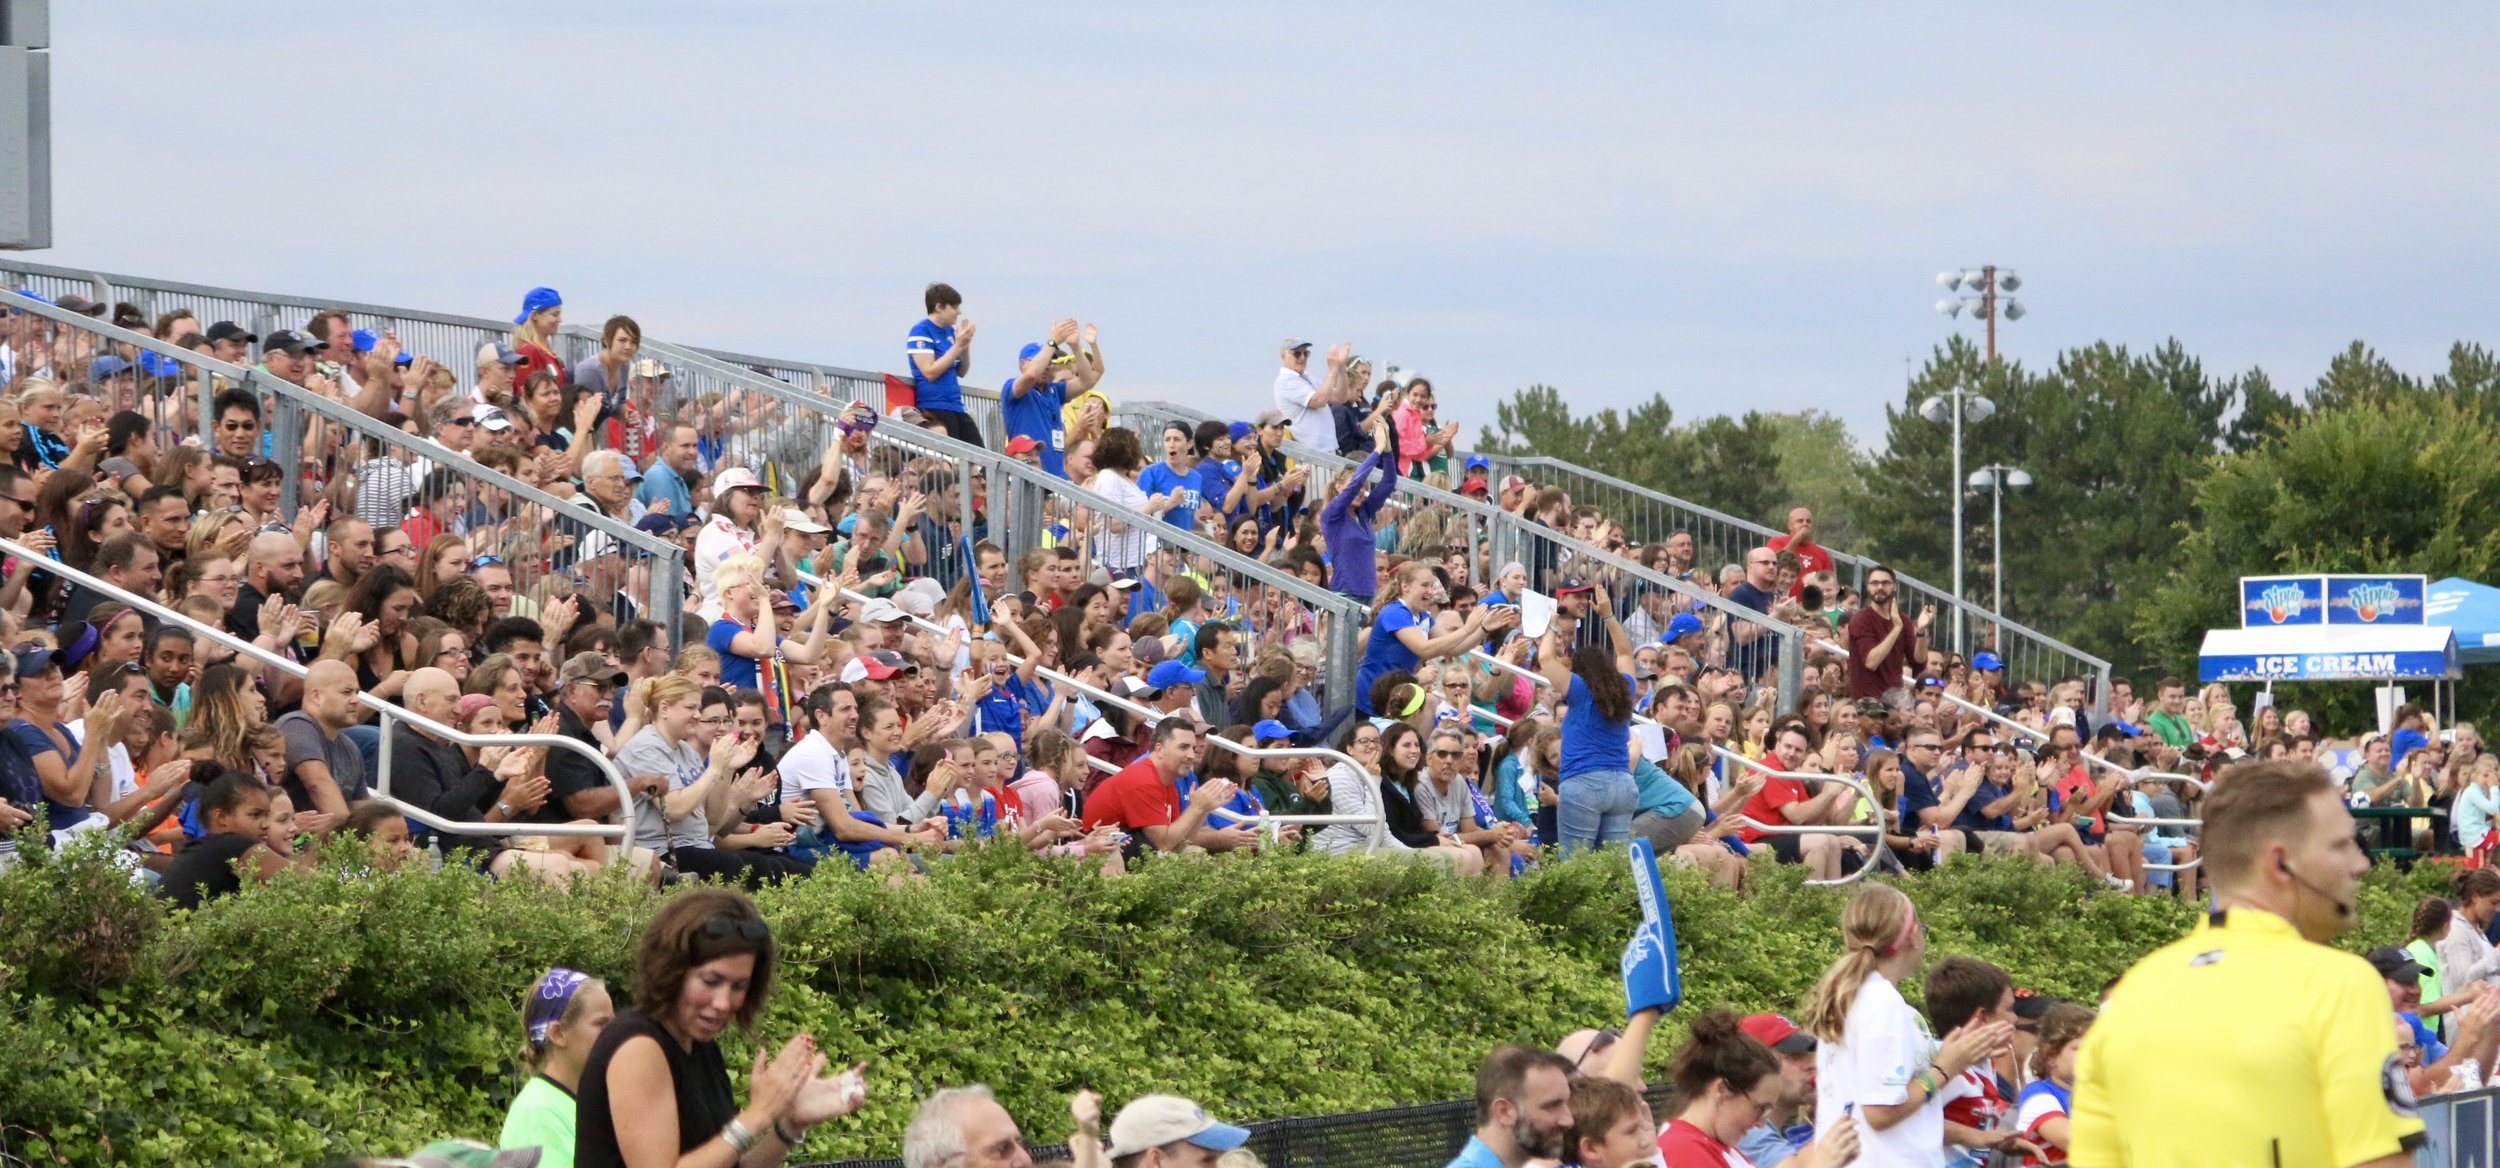 Here's more than 3k fans at a 2016 Breakers game vs the Pride gleefully paying to sit on Erector Set bleachers.C'mon Orlando, fill up that big beautiful soccer stadium.